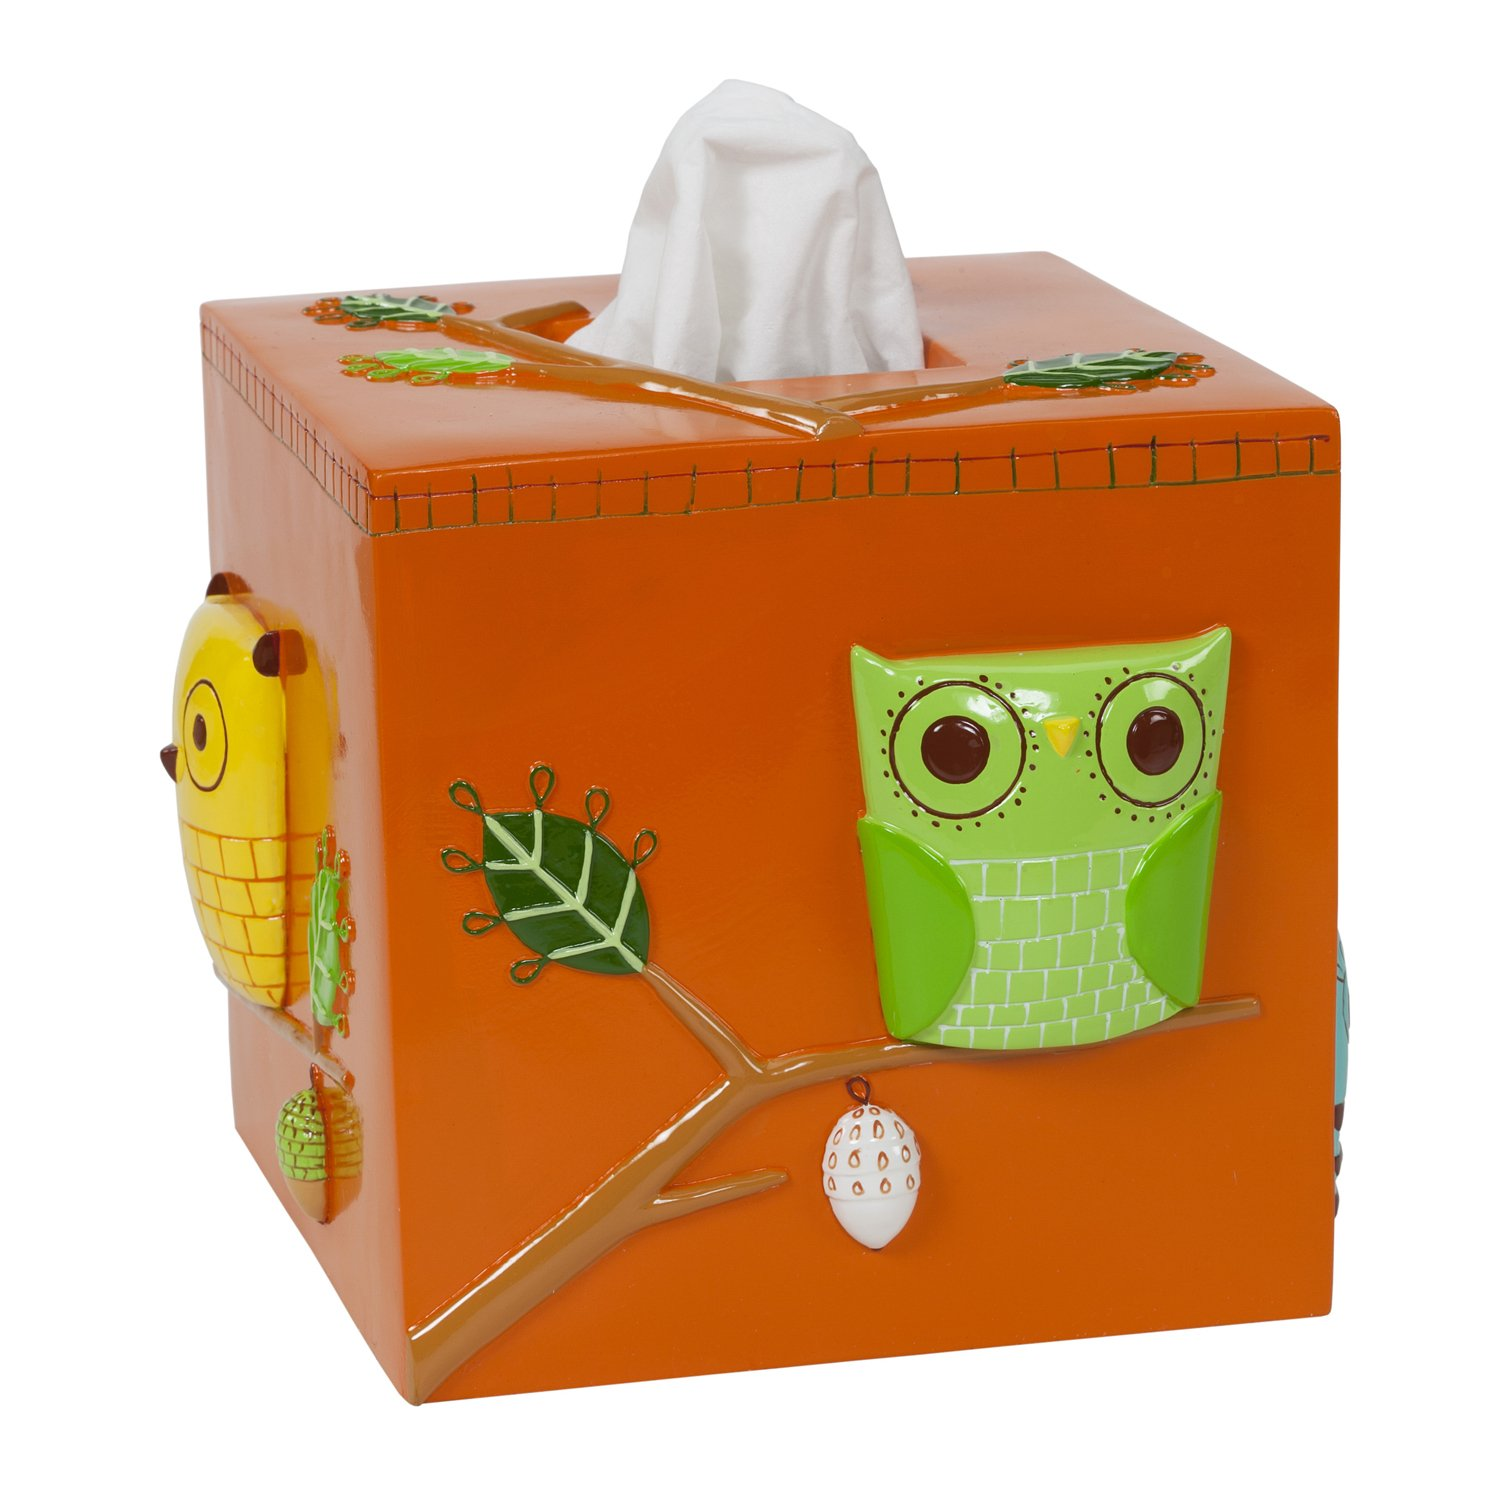 Creative Bath Products Give a Hoot Tissue Cover